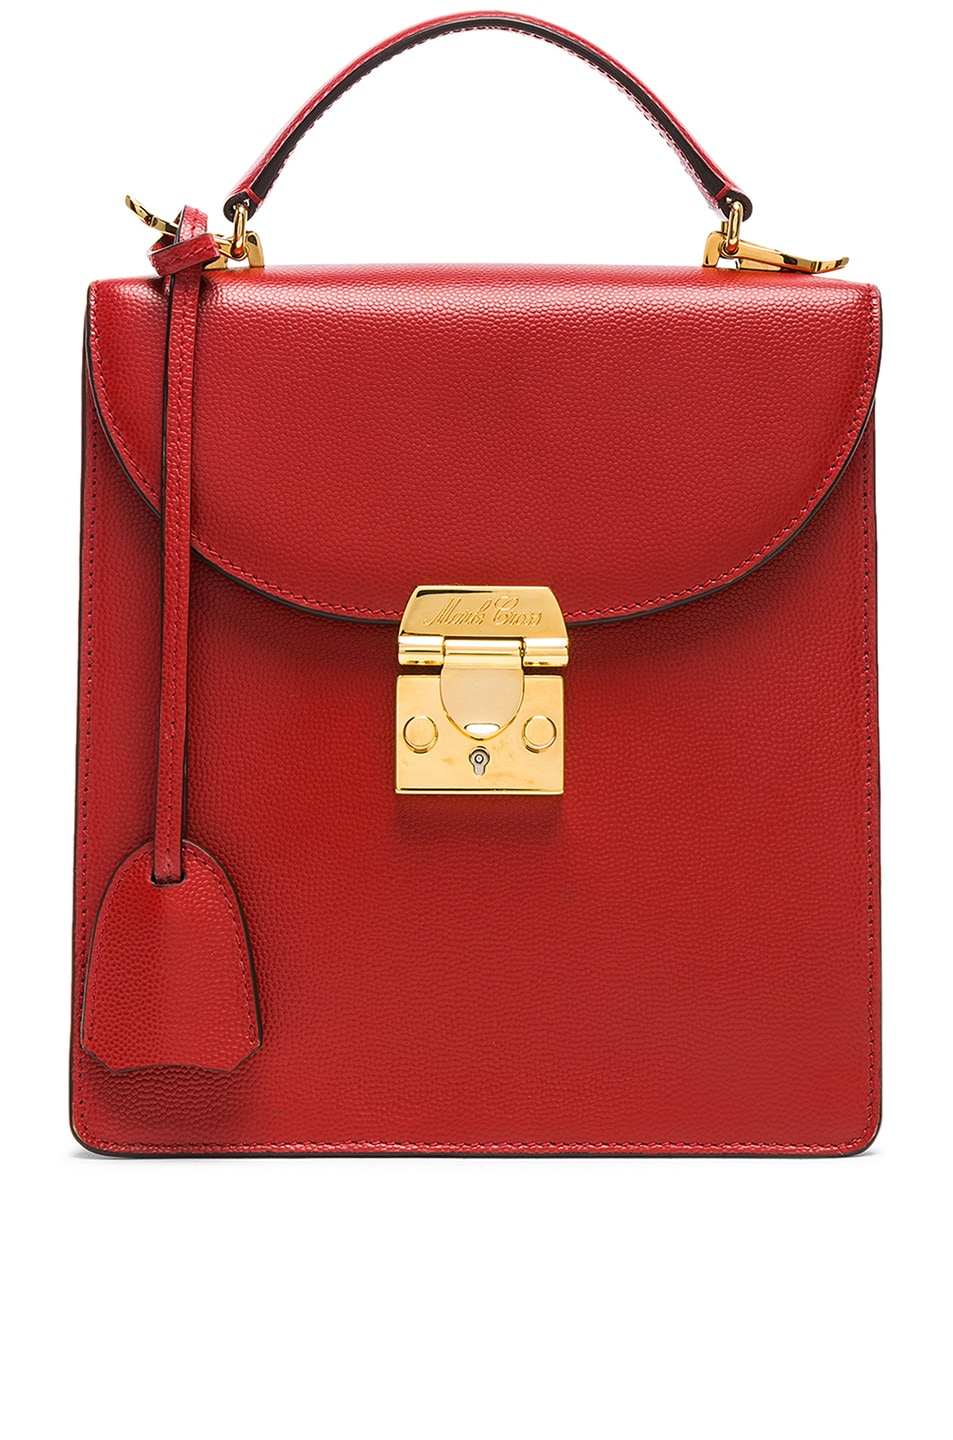 1f68394918f36a Image 1 of Mark Cross Caviar Uptown Bag in Brick Red